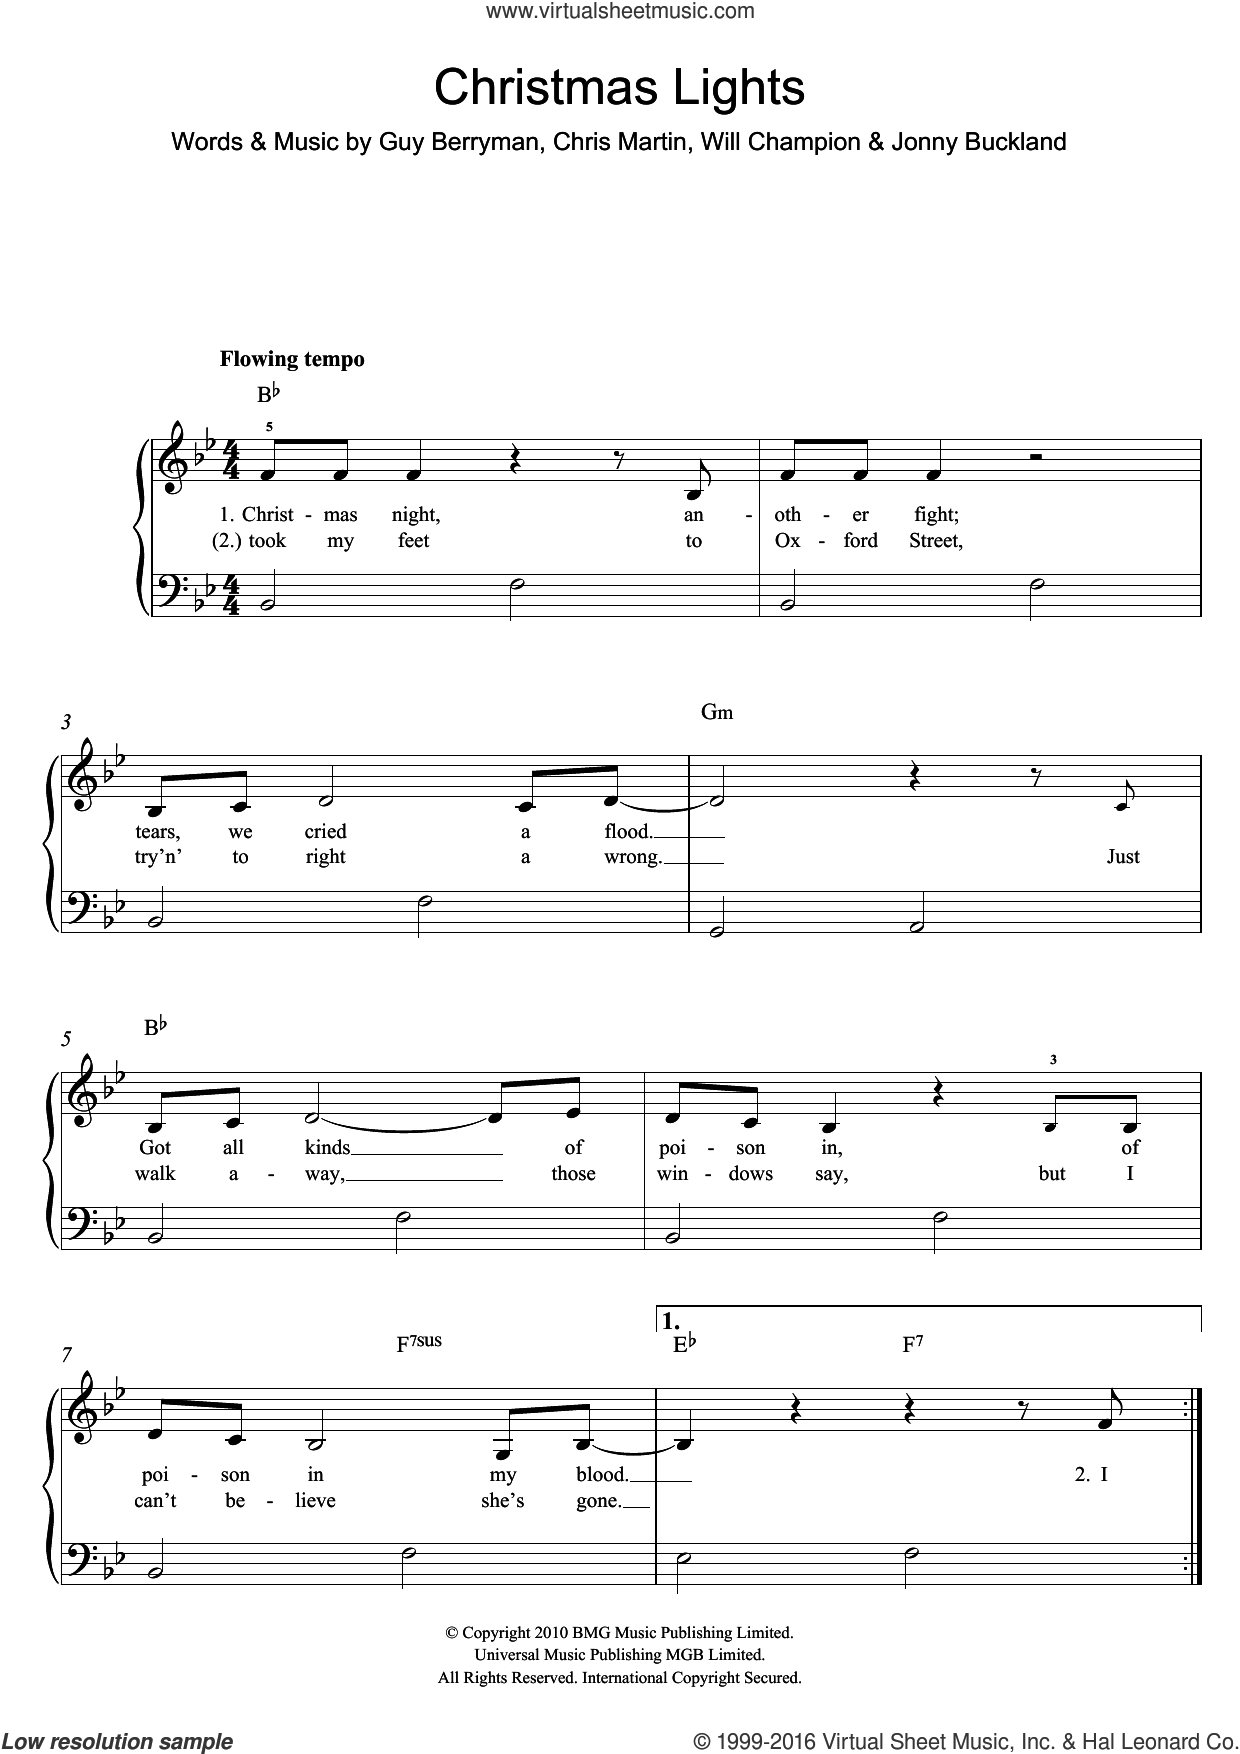 Christmas Lights sheet music for piano solo by Coldplay, Chris Martin, Guy Berryman, Jonny Buckland and Will Champion, easy. Score Image Preview.